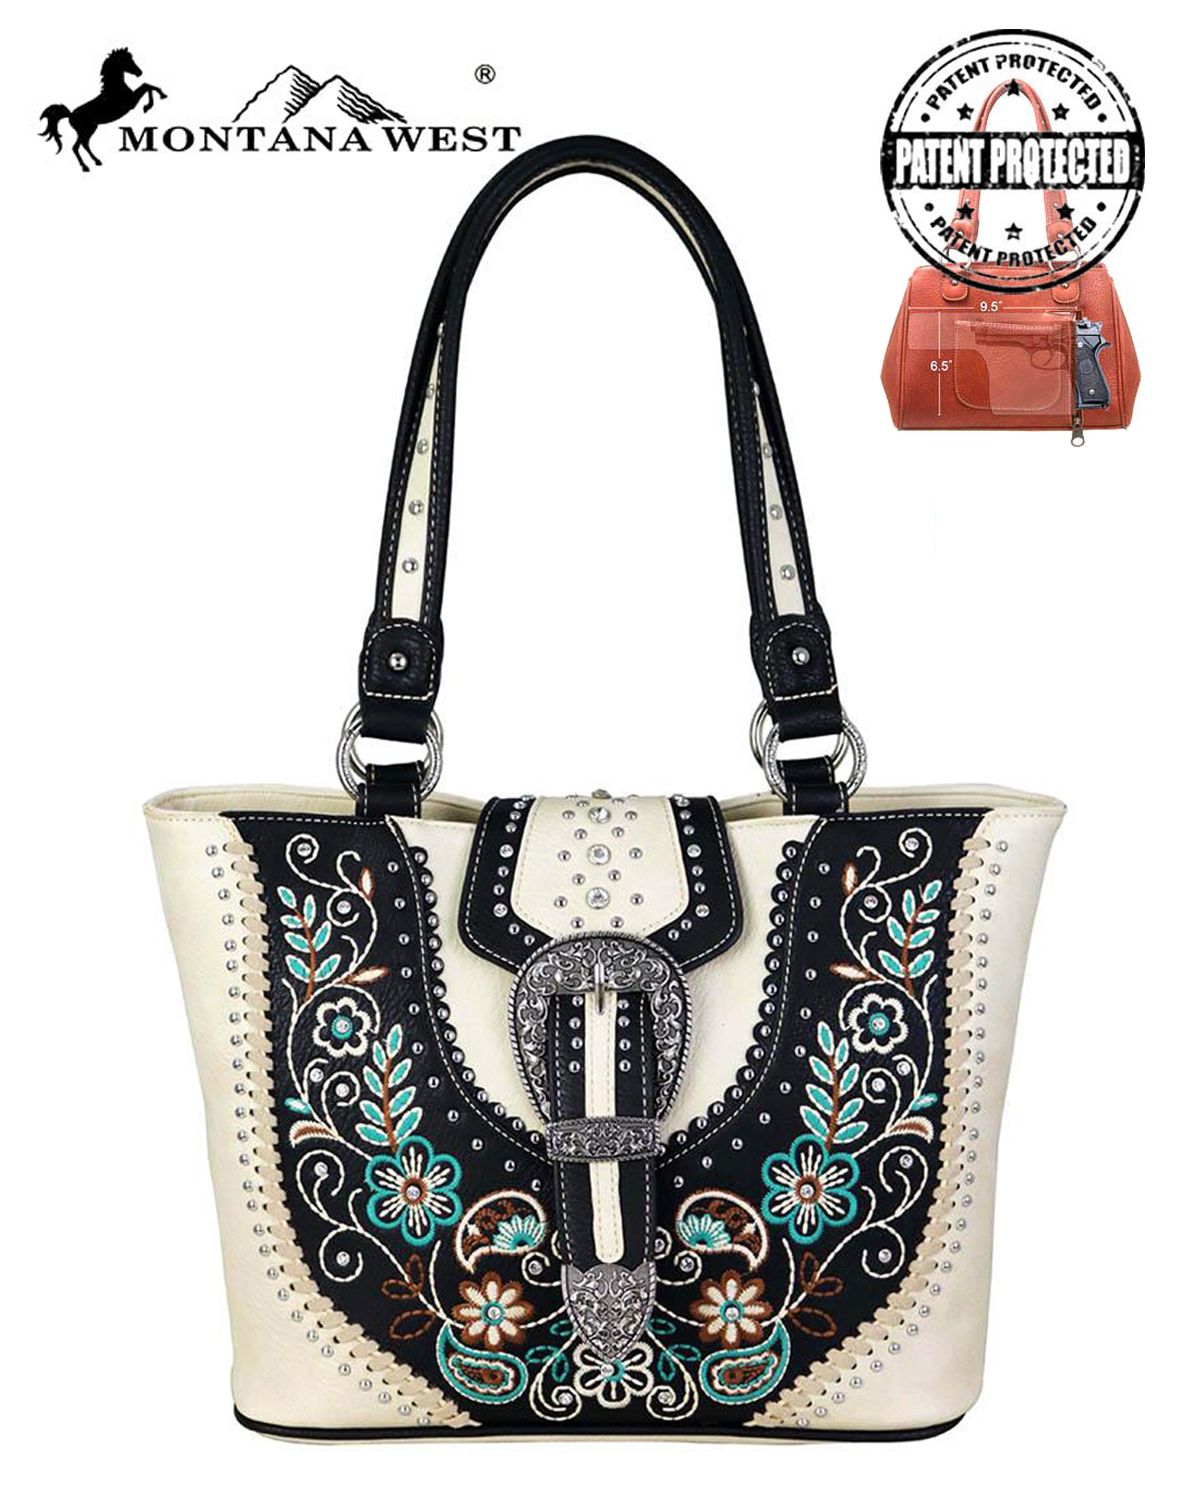 663ee7e65fbb Get Incredible Discount Prices on our Wholesale Fashion Handbags Today!